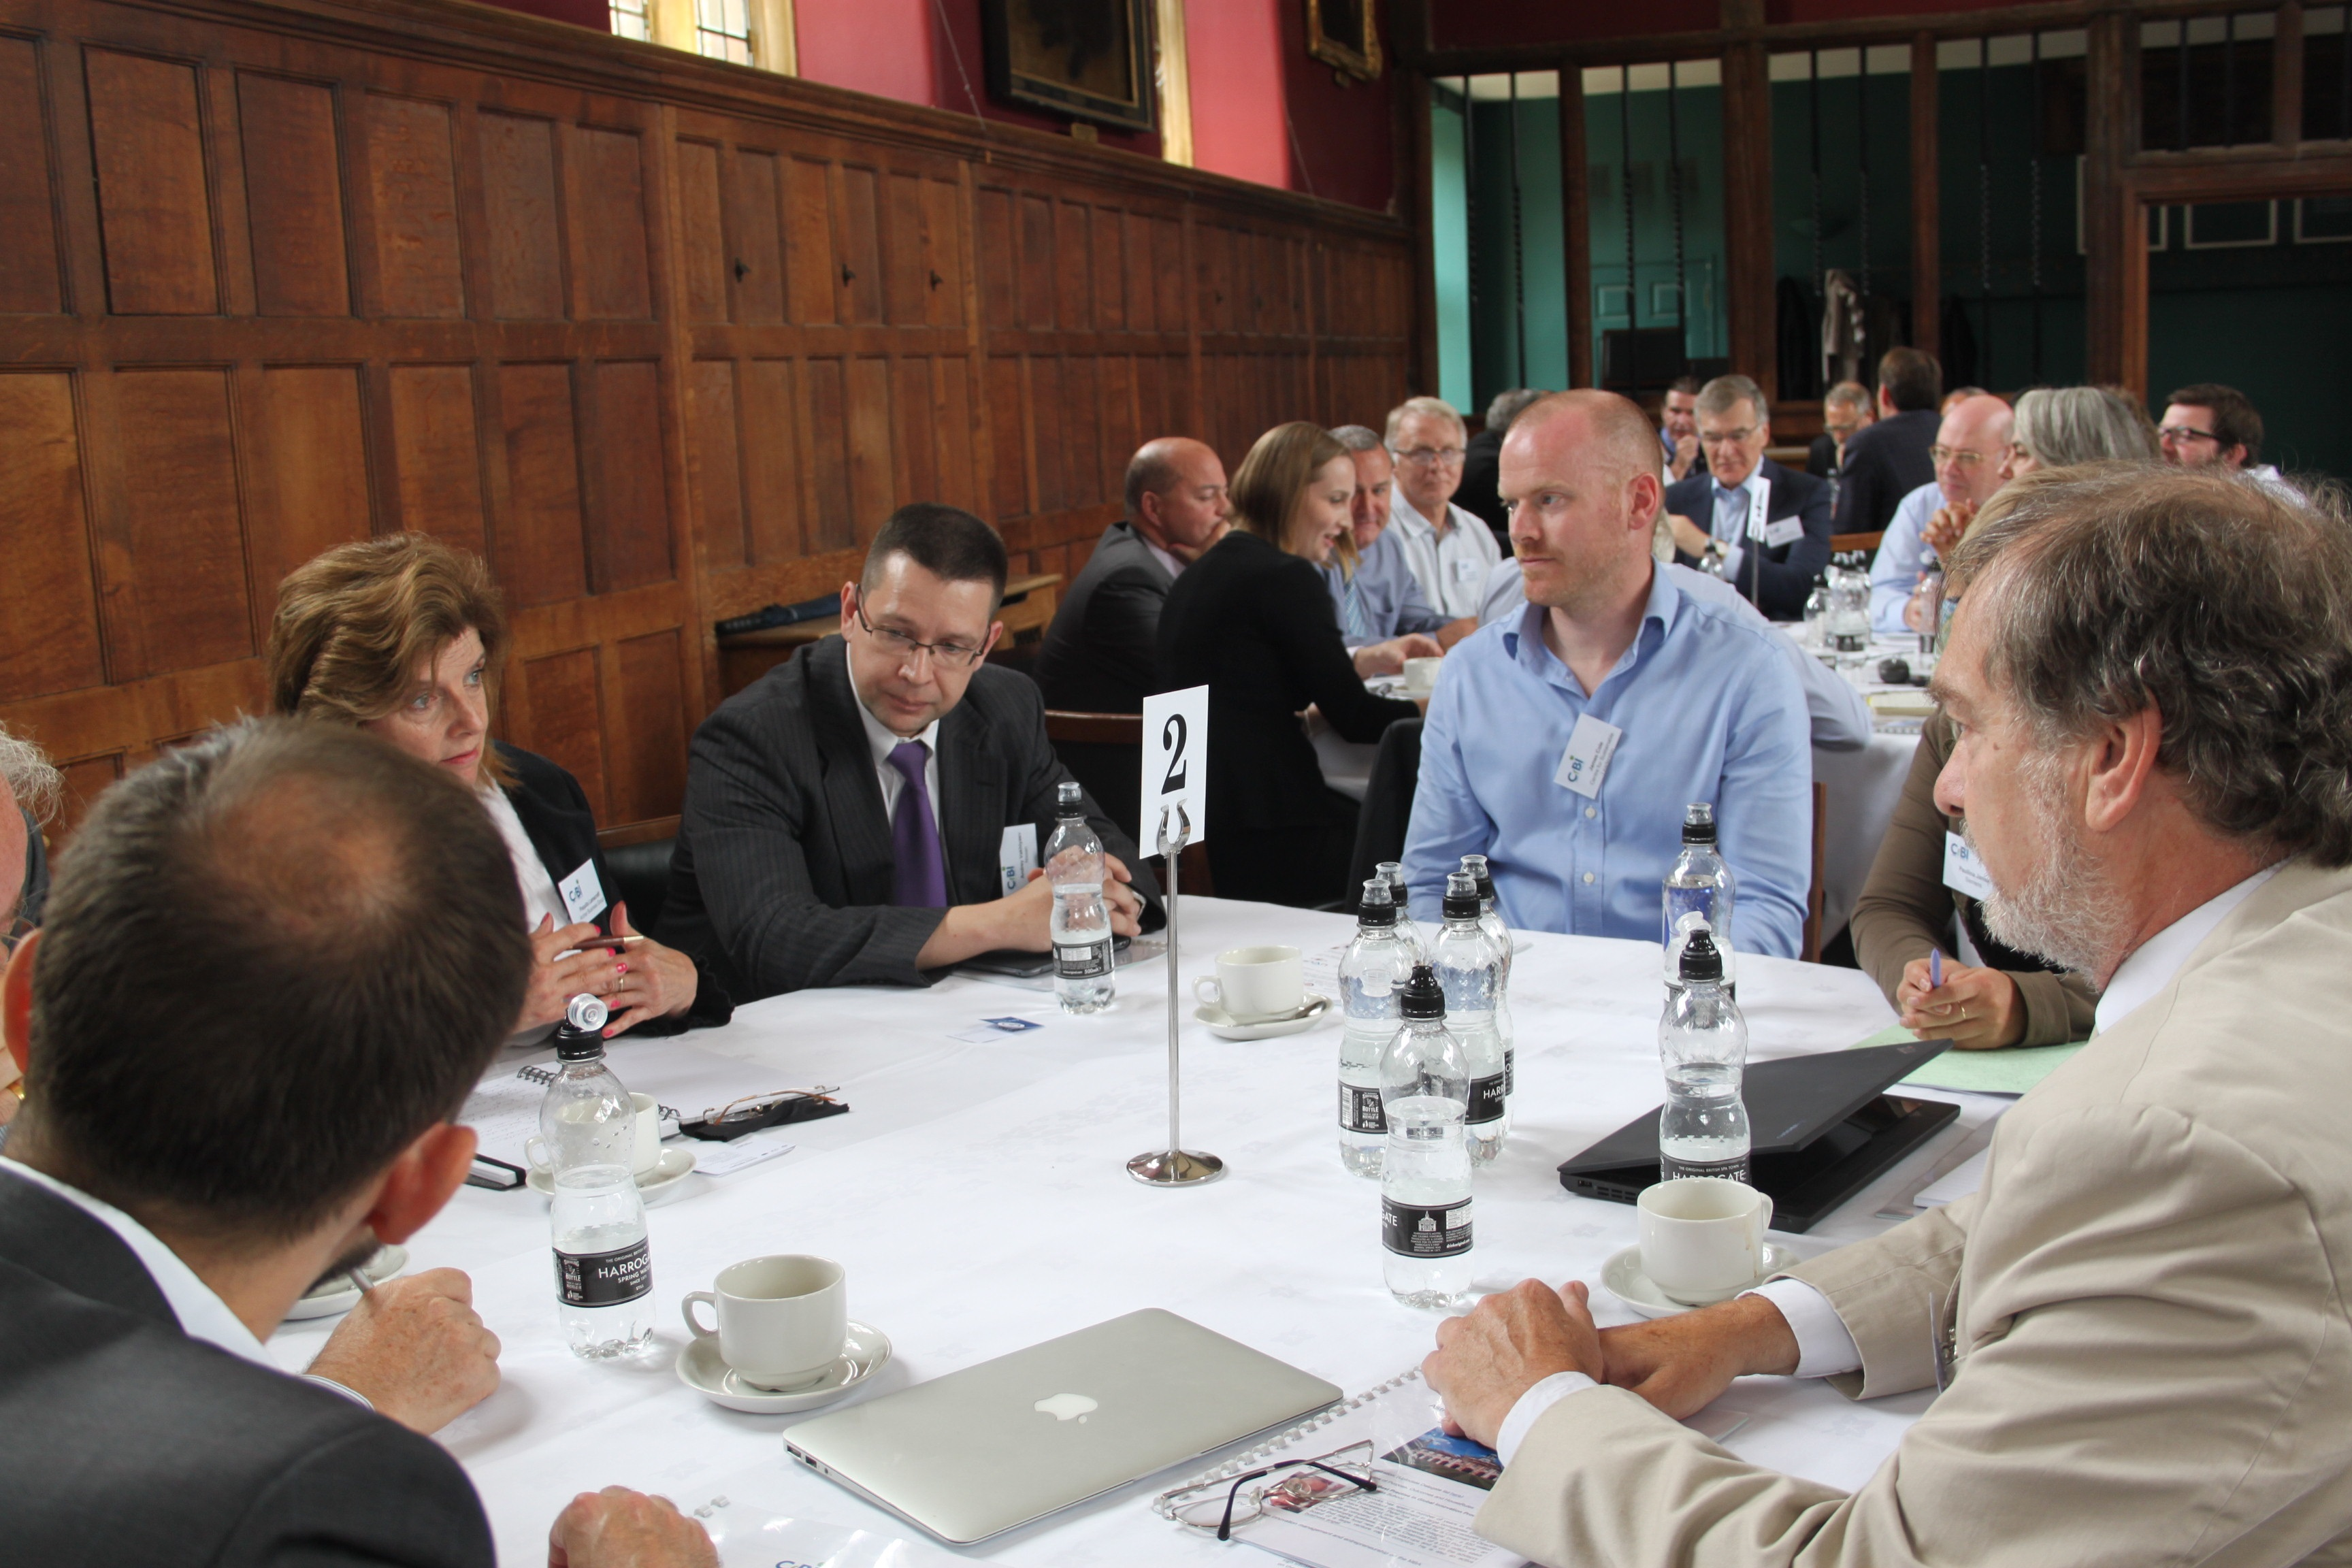 Innovation-Summit-Working-Session-at-Emmanuel-College